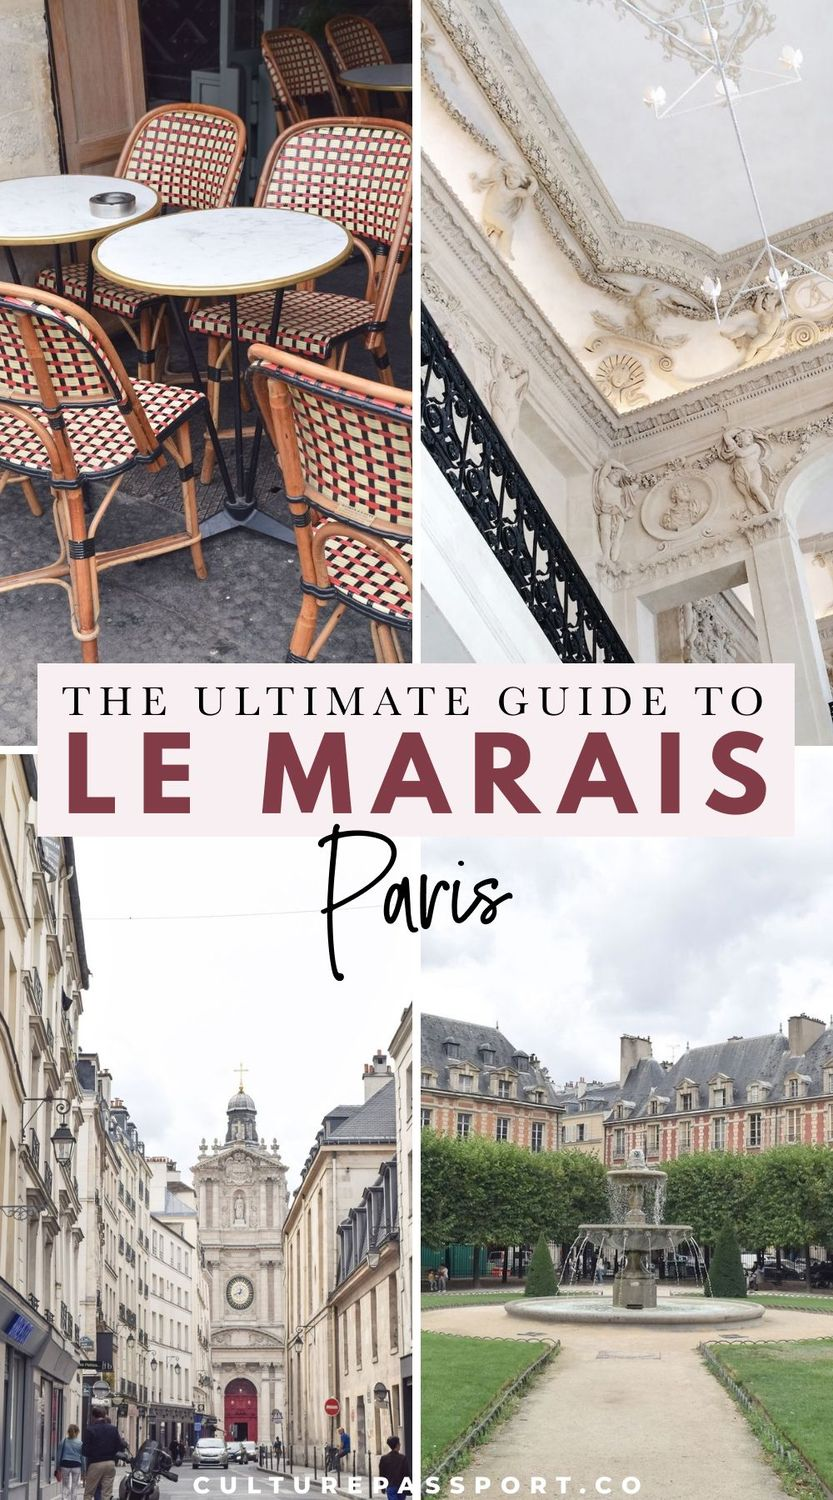 The Ultimate Guide to Le Marais Paris